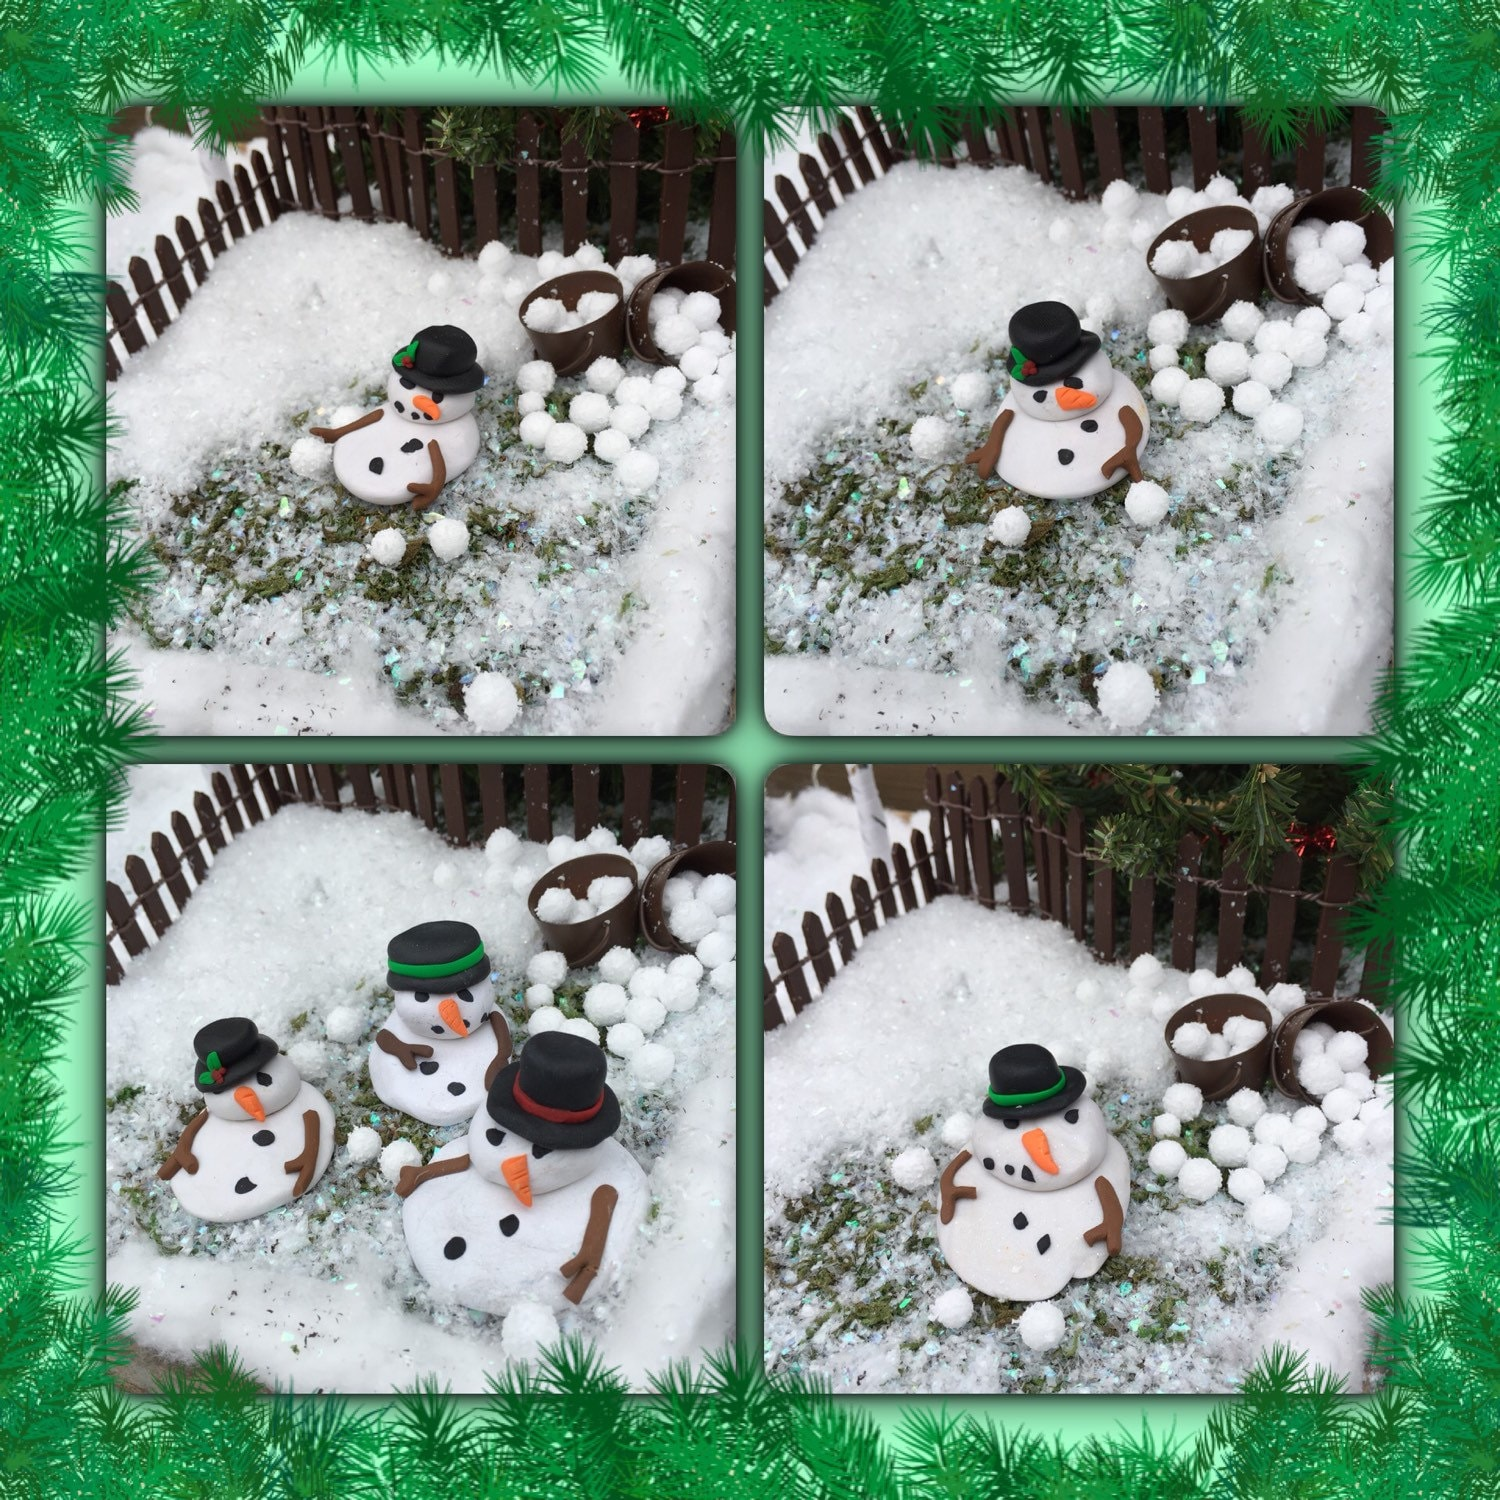 Polymer Clay Christmas Village.Assorted Melted Snowman Polymer Clay Winter Fairy Garden Christmas Village